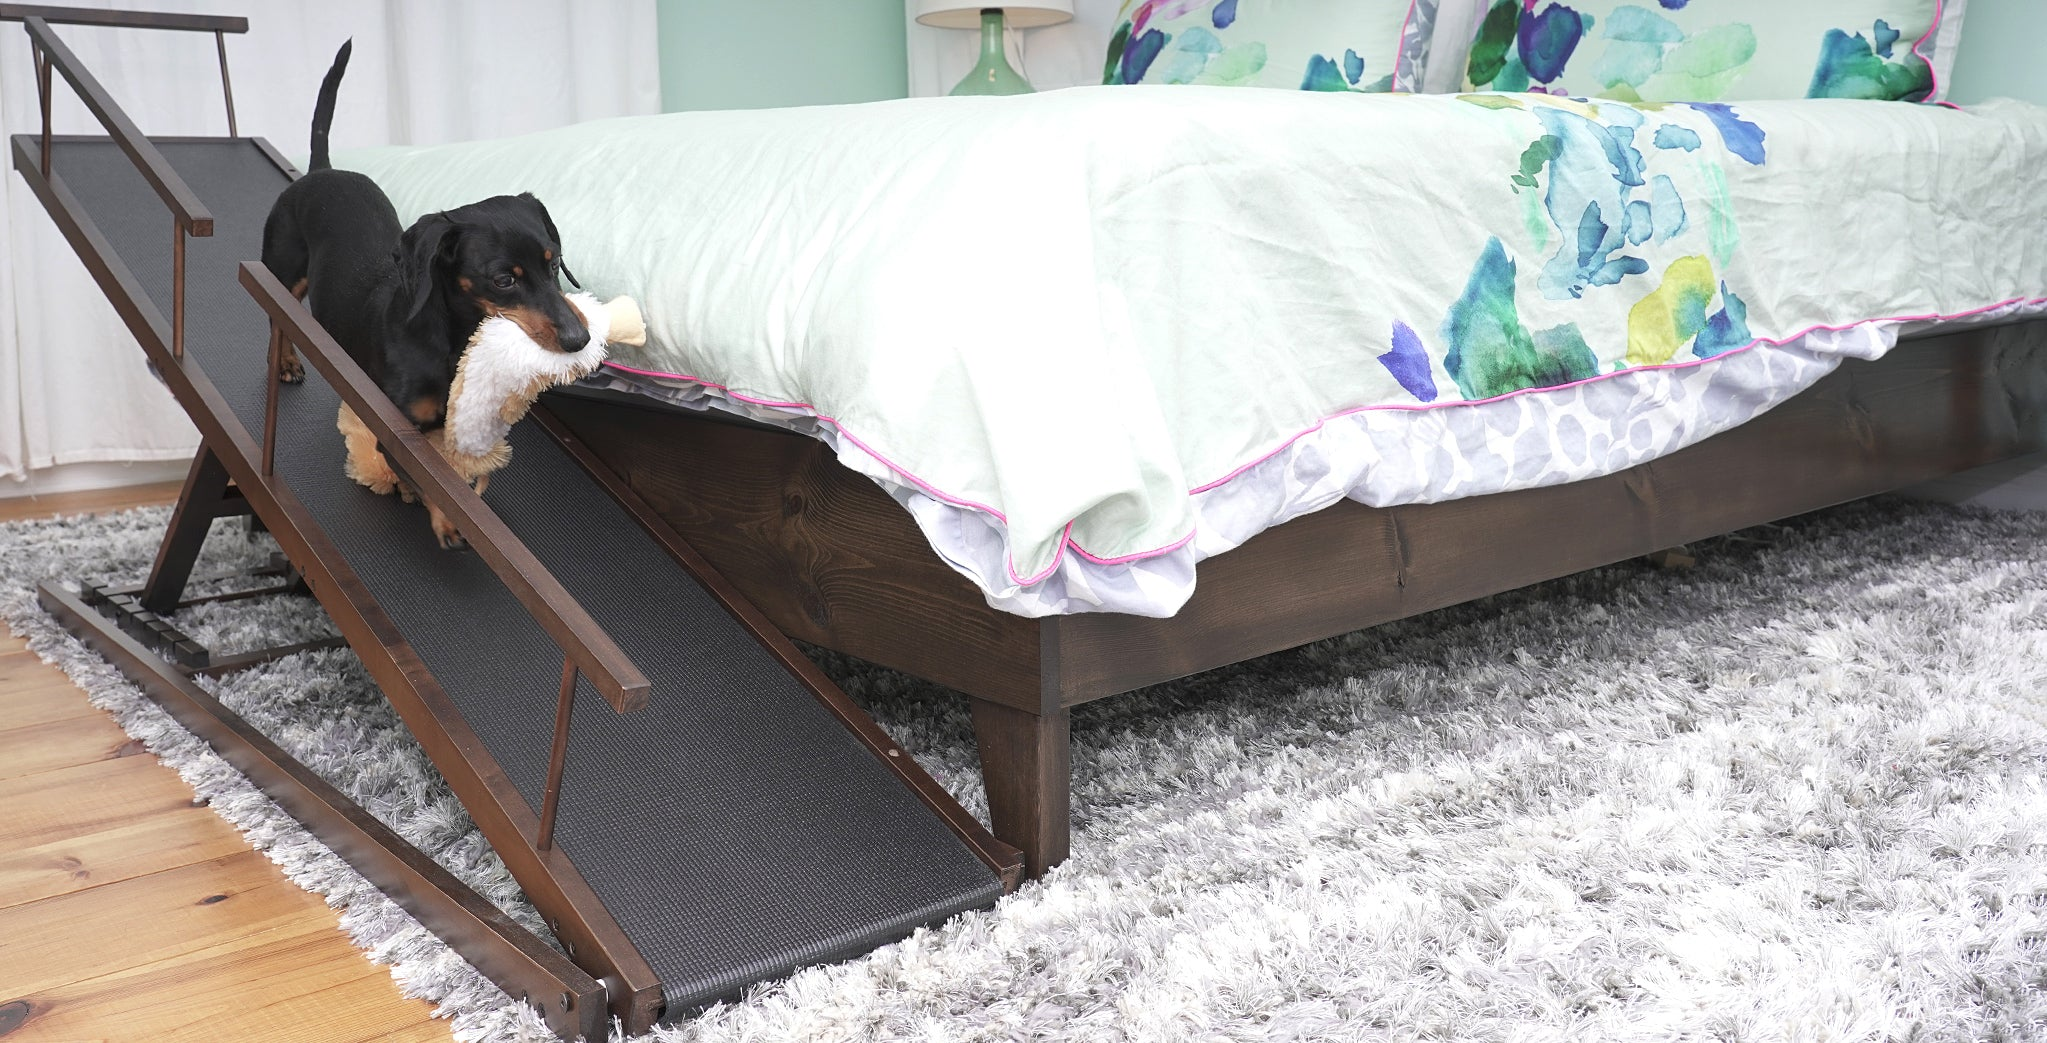 Dachshund going down bed ramp